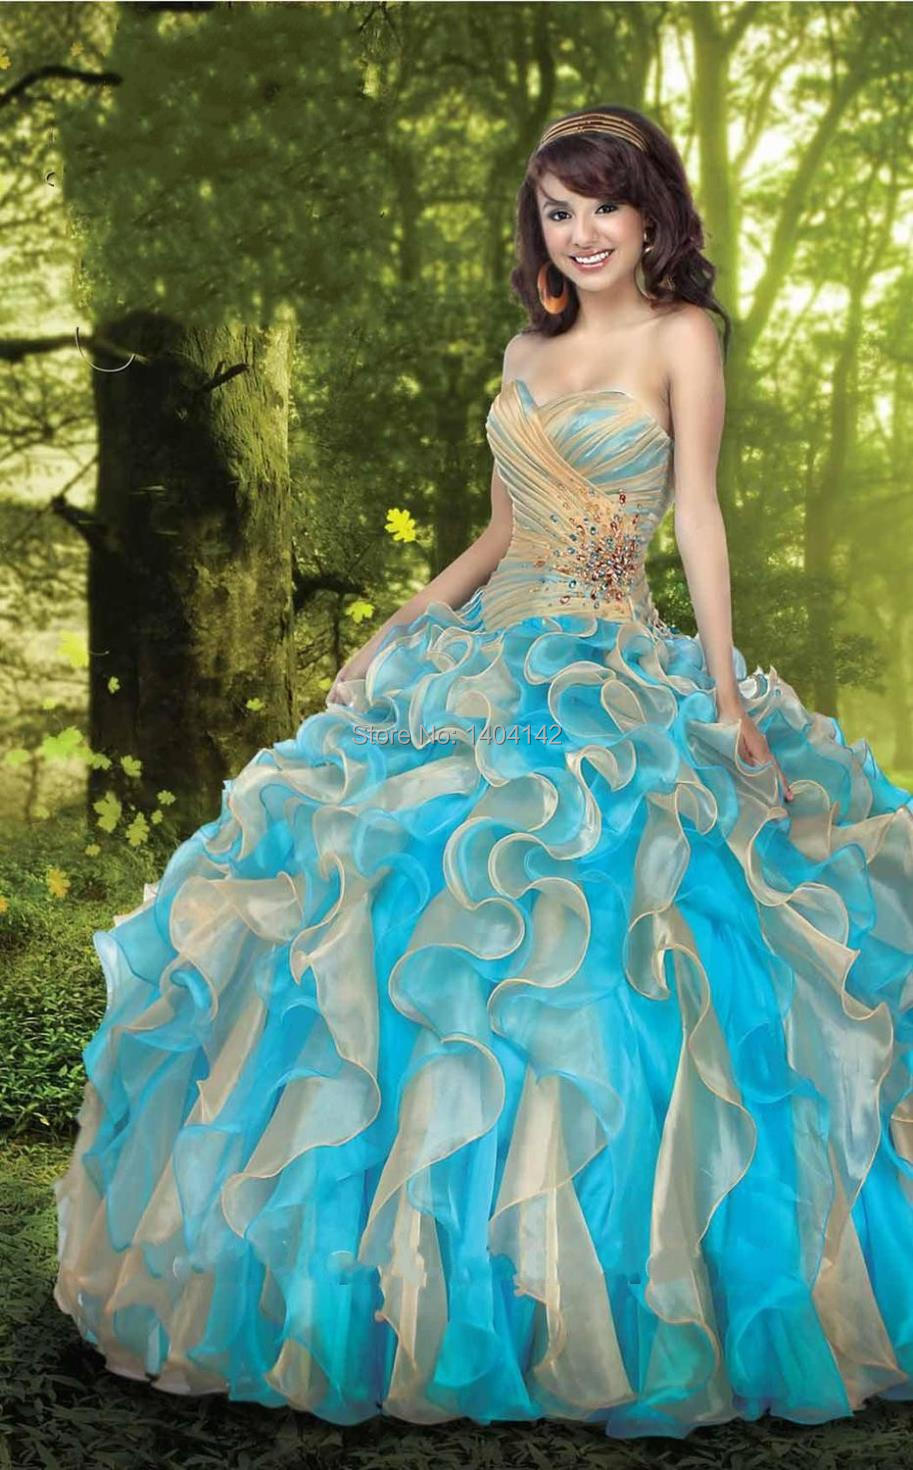 Dresses quinceanera blue and gold catalog photo